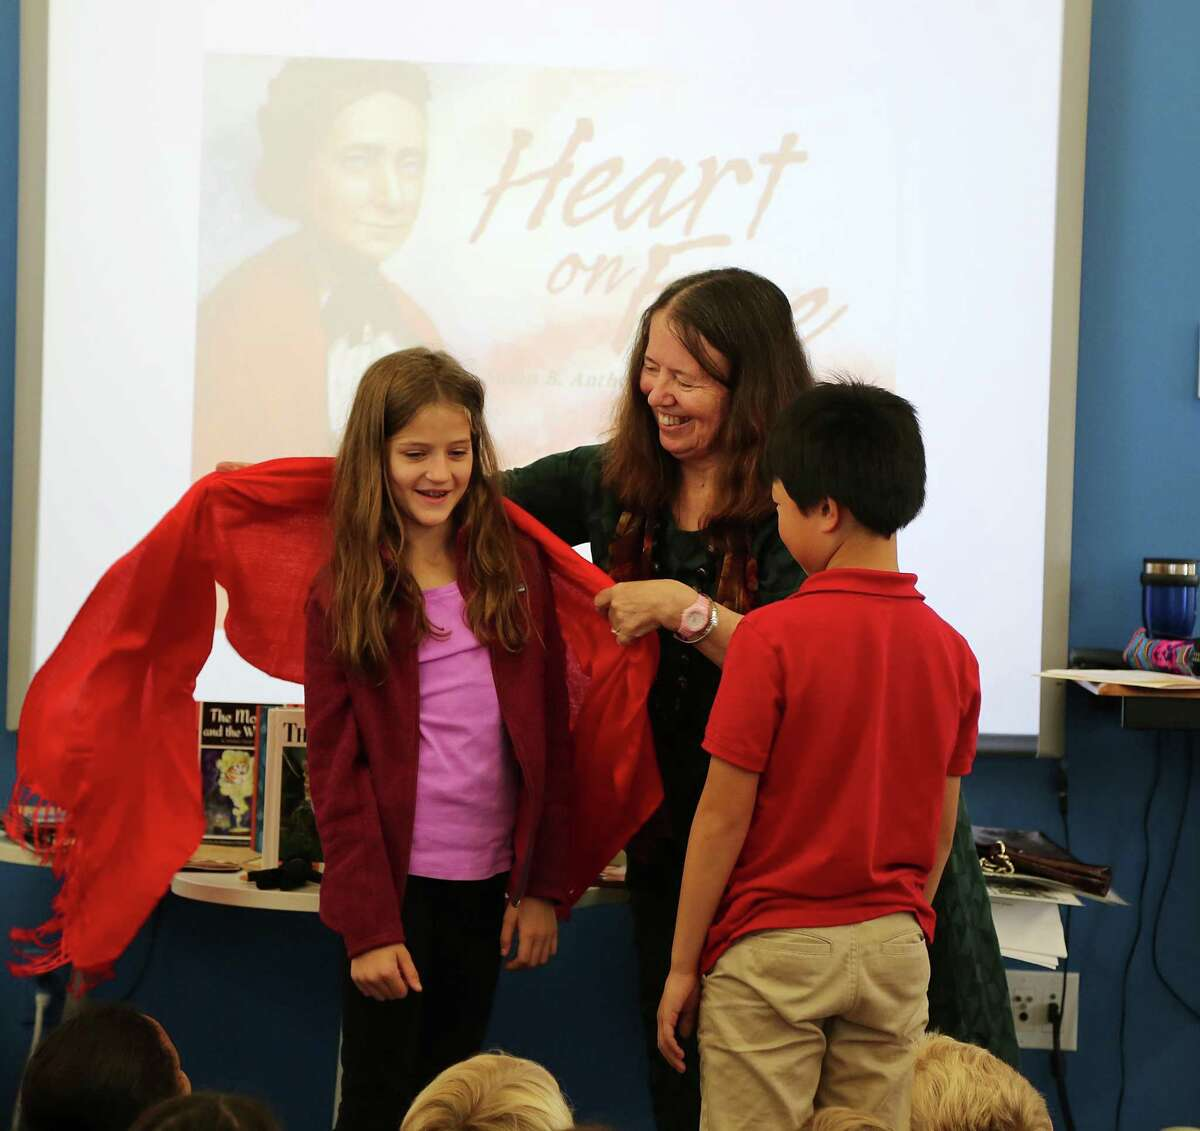 Ann Malaspina, author of books such as Heart on Fire, shared writing tips and offered New Canaan Country School students Isabella Kelley, of Westport, and Jayden Liu, of Stamford, a chance to try on a red shawl similar to the one worn in 1872 by women?'s rights activist Susan B. Anthony.